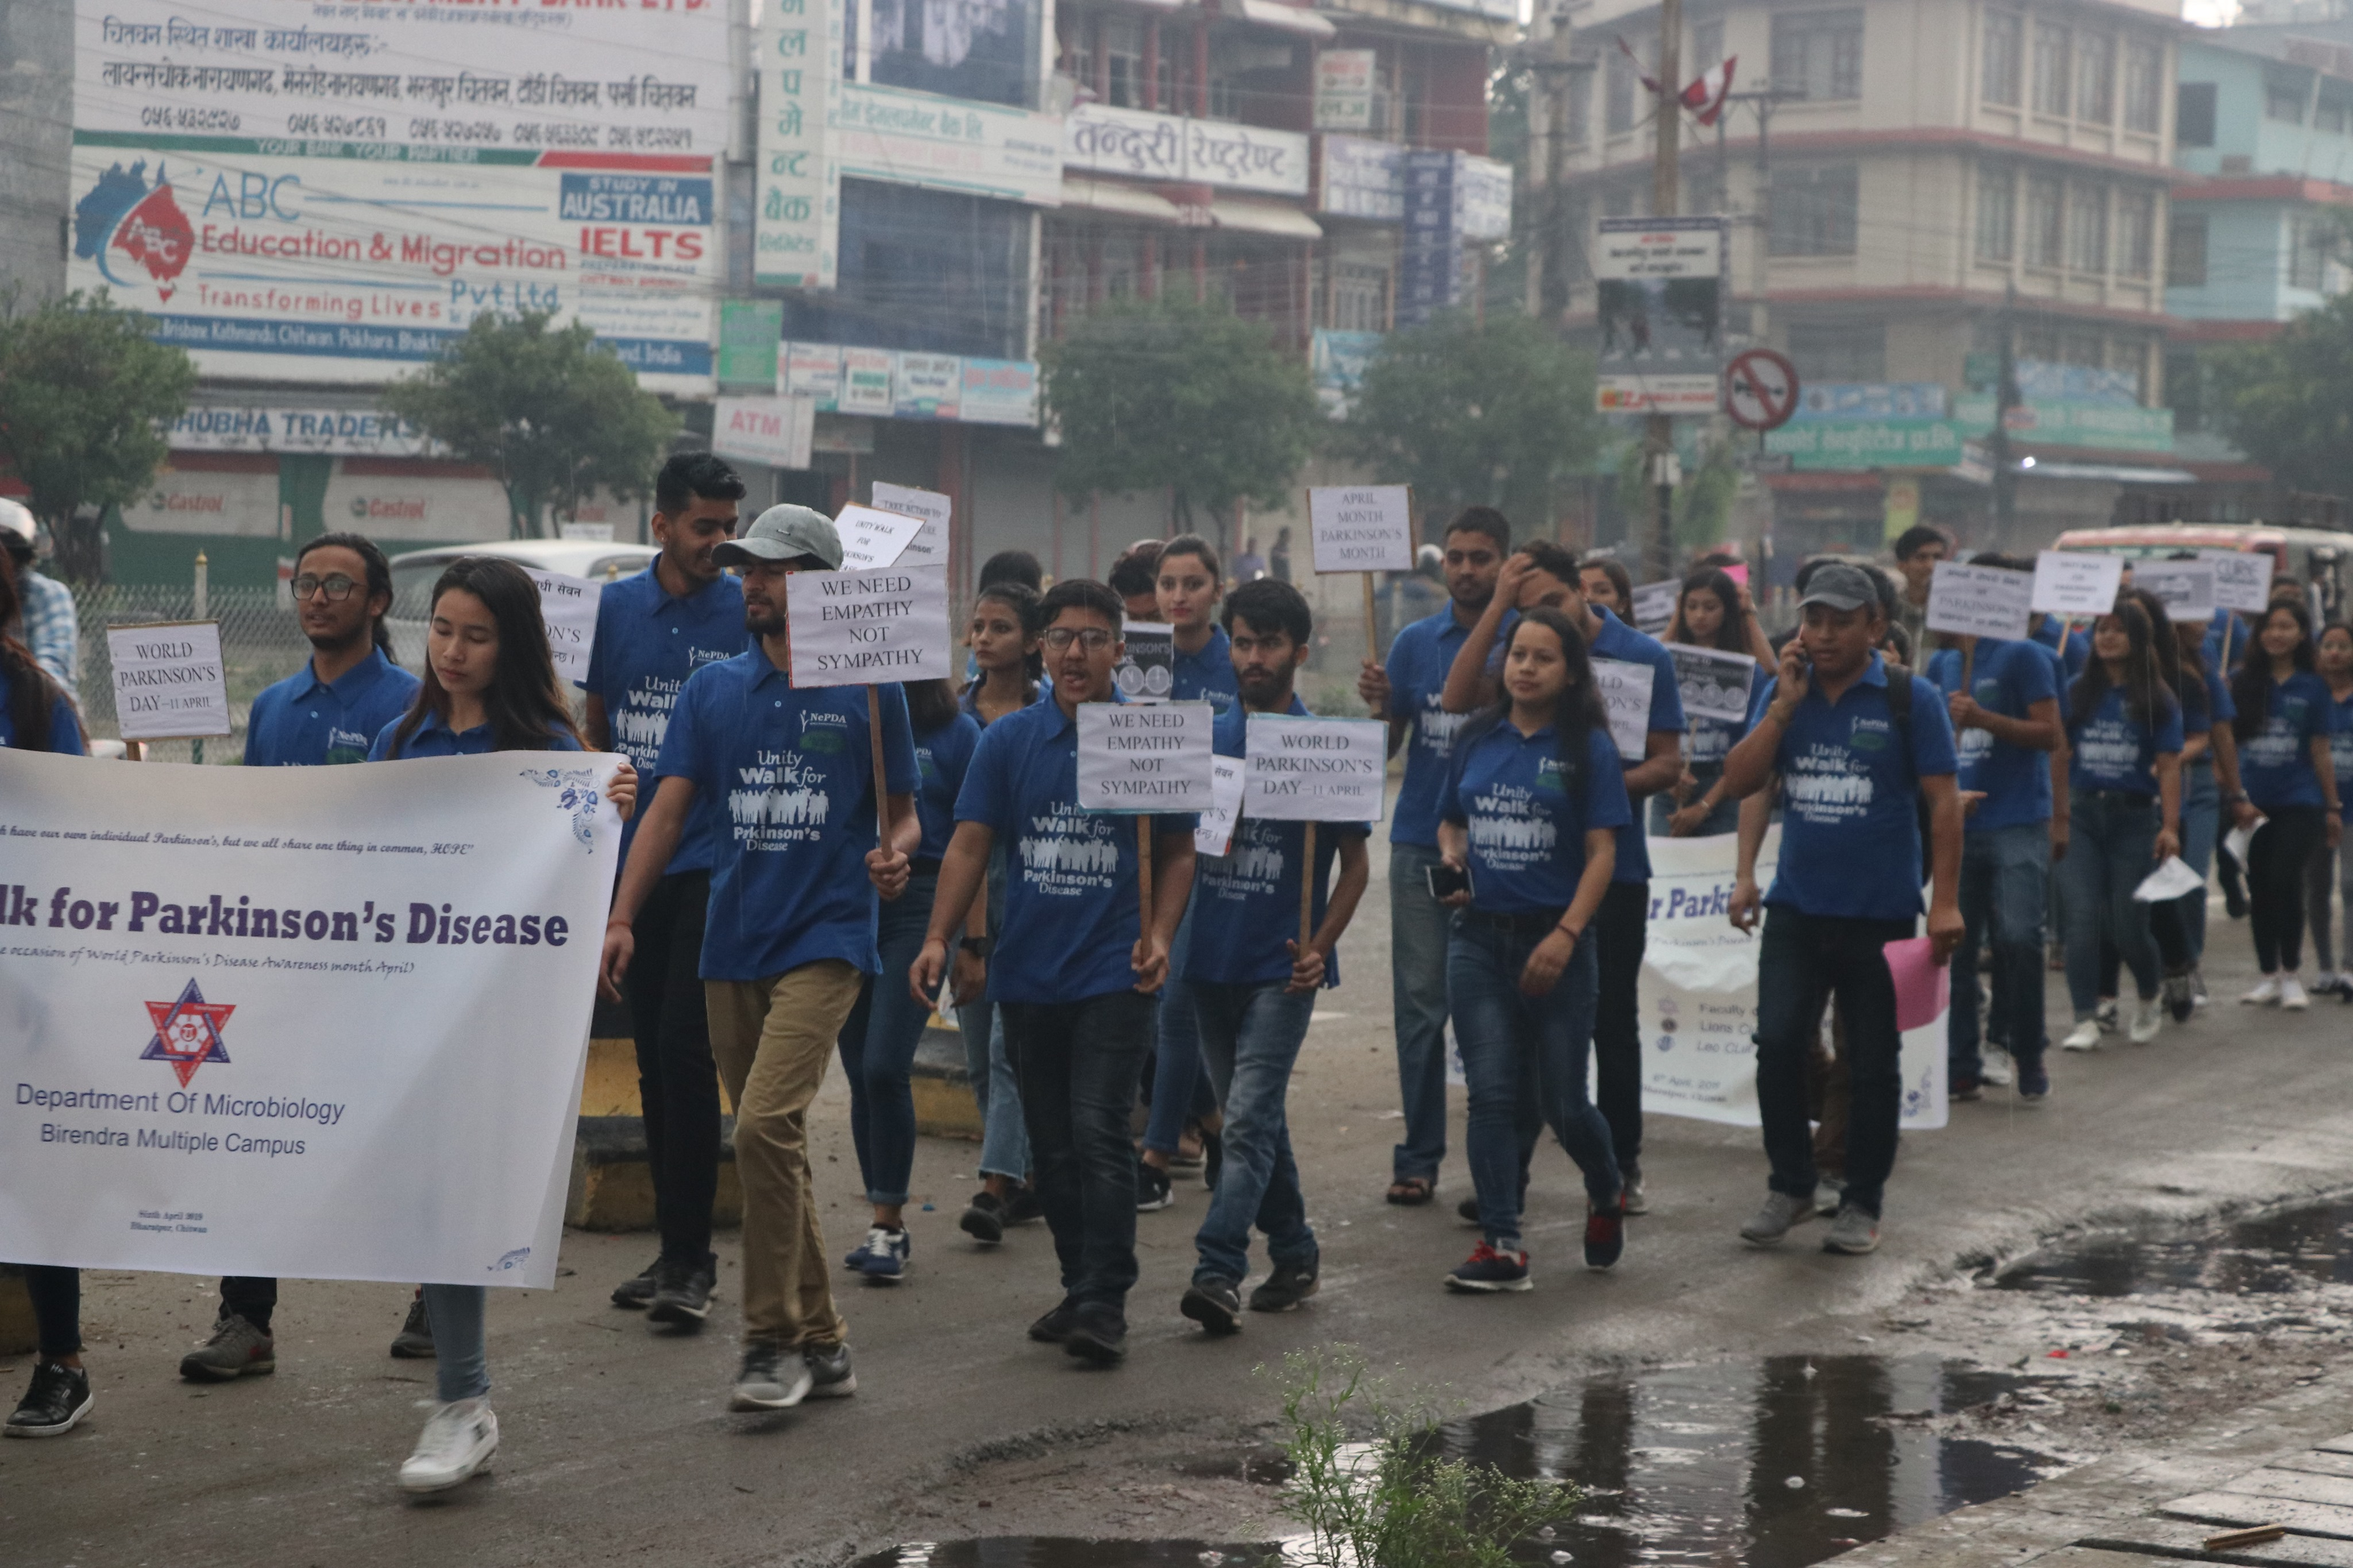 Unity Walk for Parkinson's Disease, Bharatpur, Chitwan, Nepal (Informal Session)